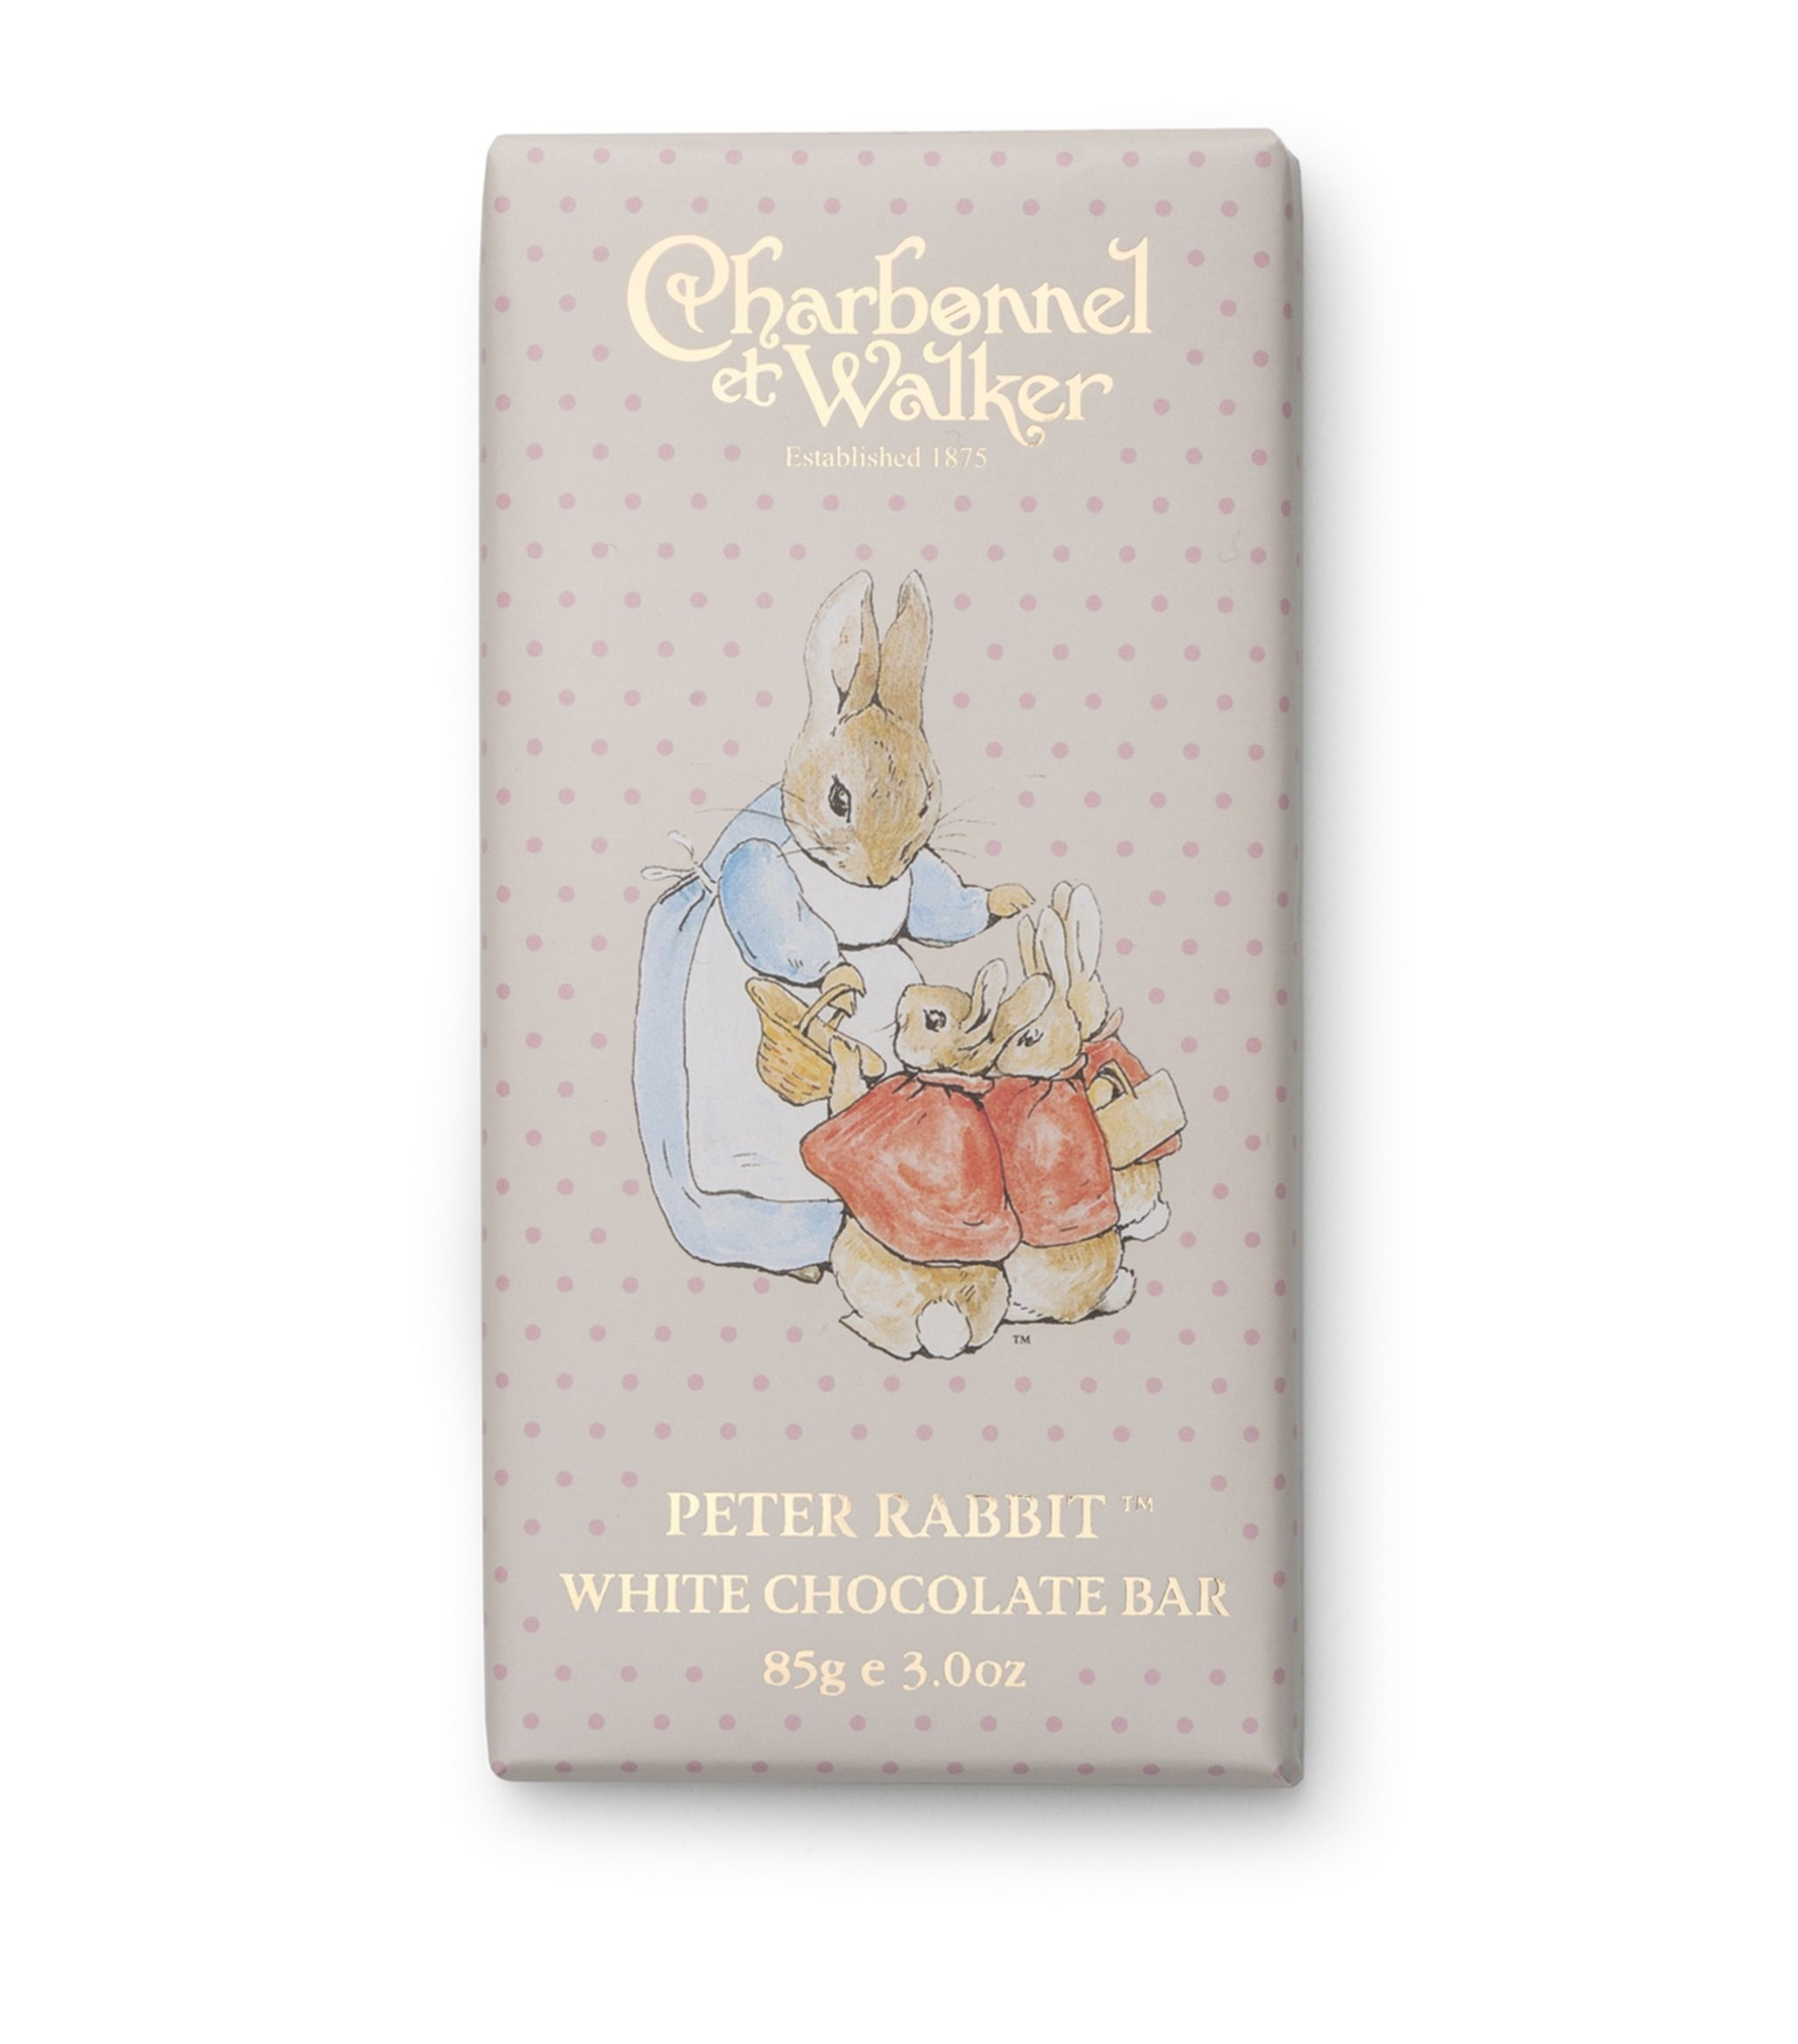 Charbonnel et Walker - Peter rabbit white chocolate bar -